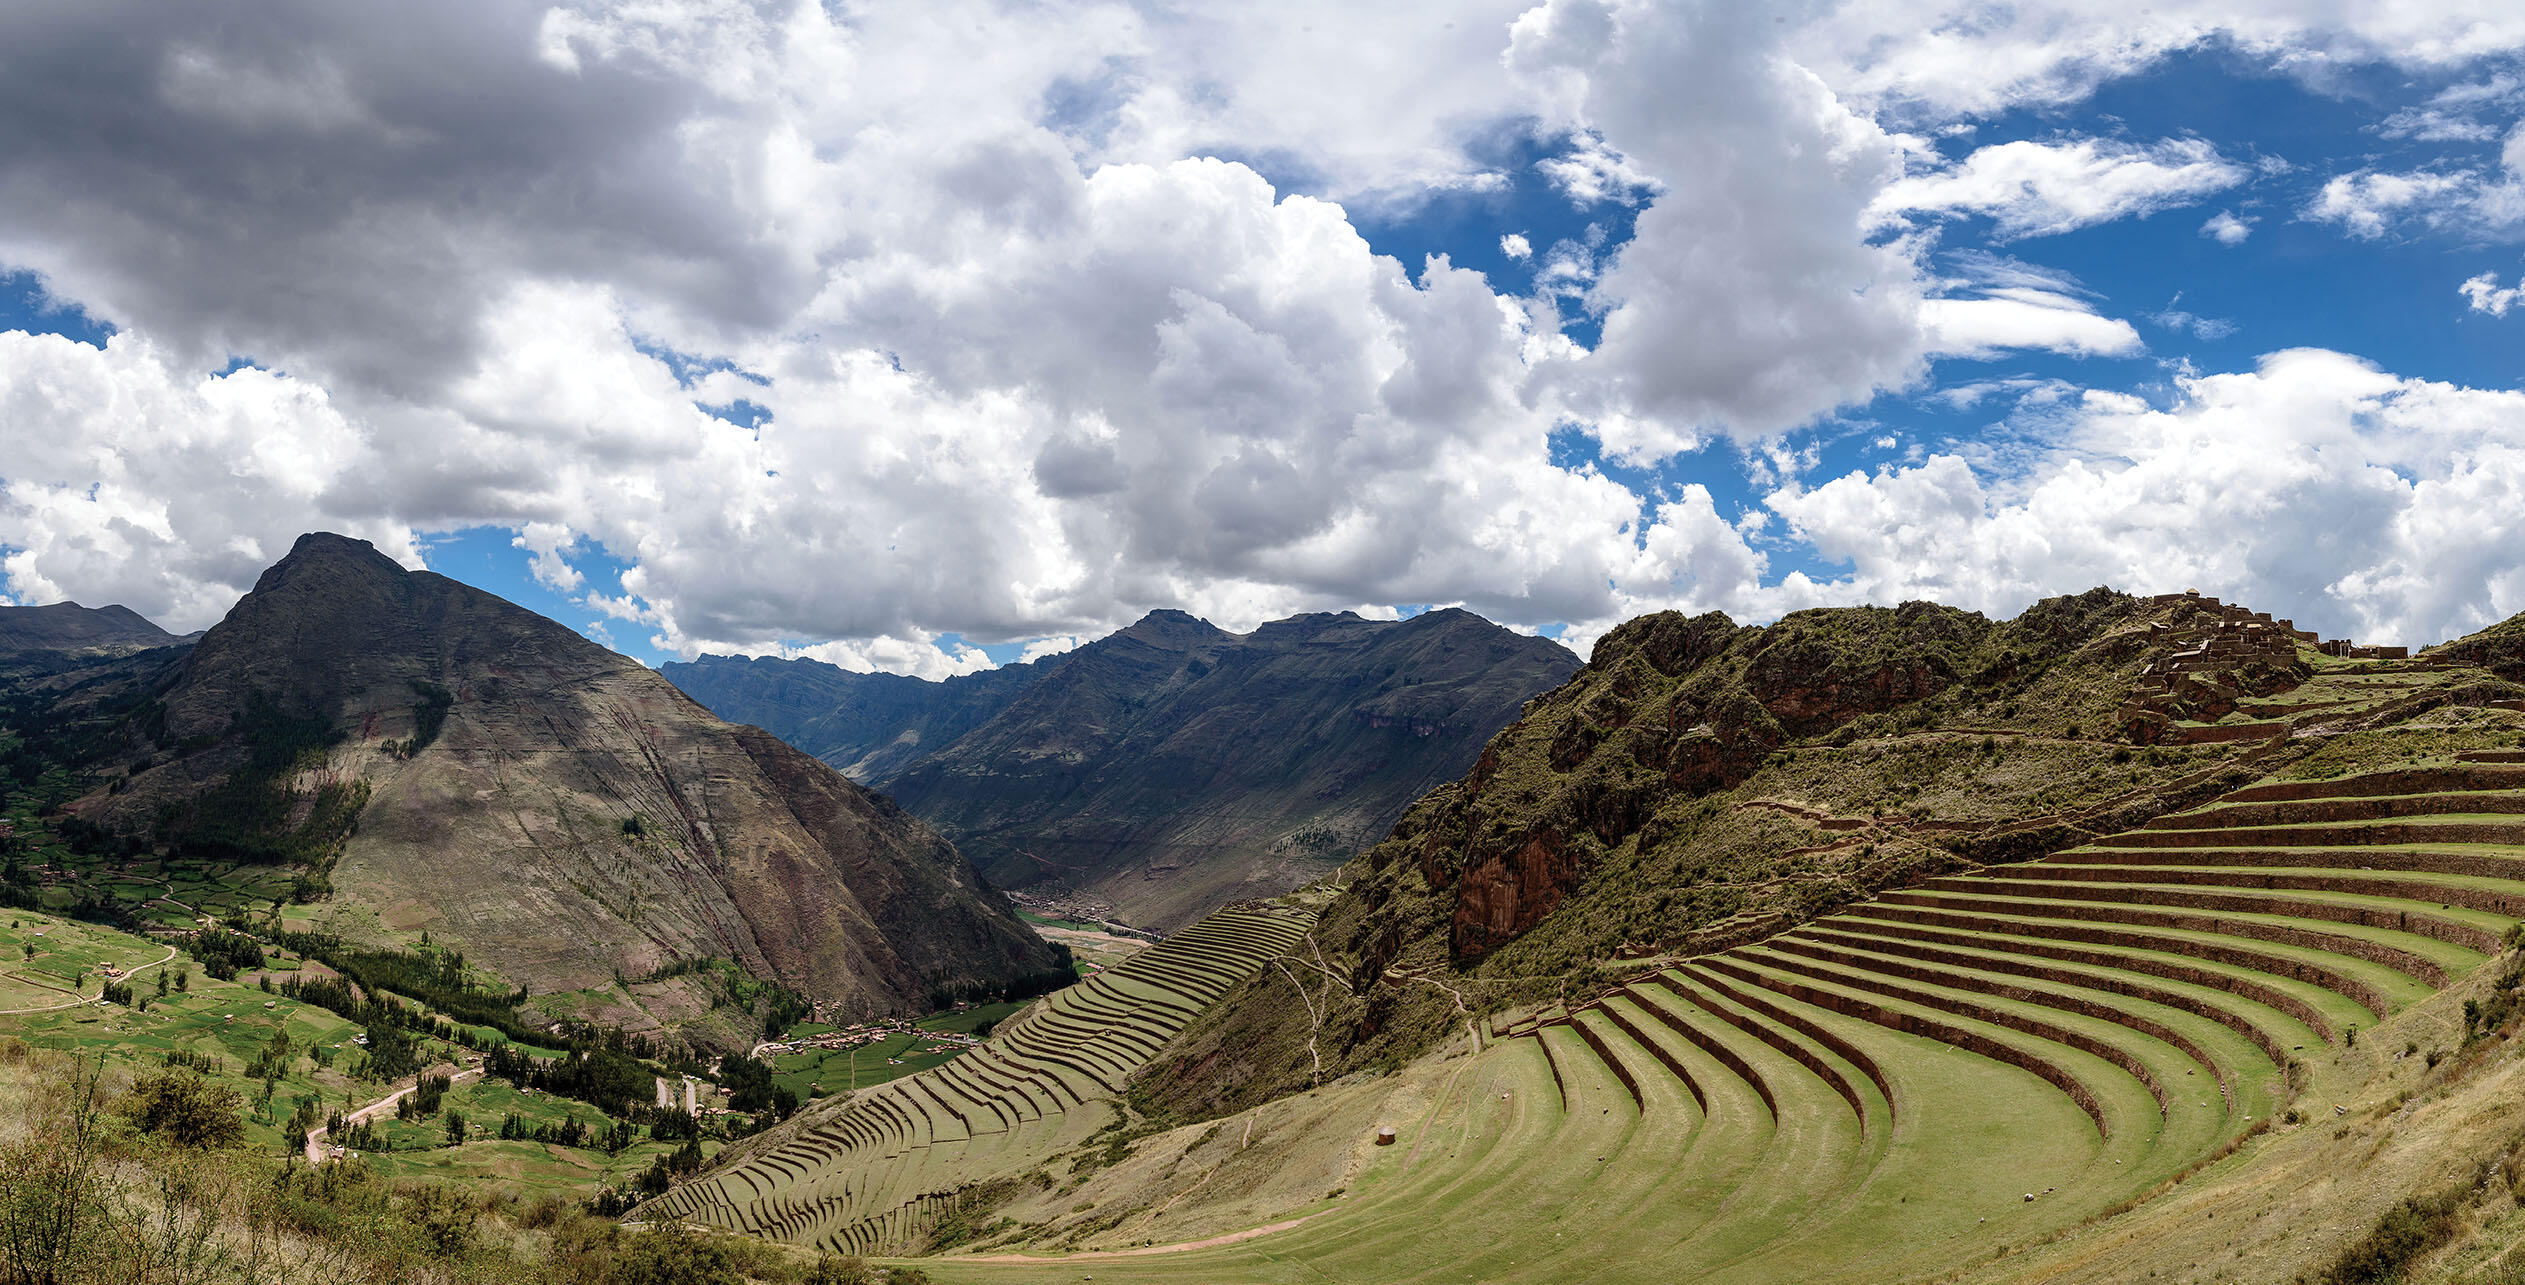 Aerial photo of terrace works in Pisac, Peru, which turned mountainsides into arable farmland. (Photo by MudflapDC.)